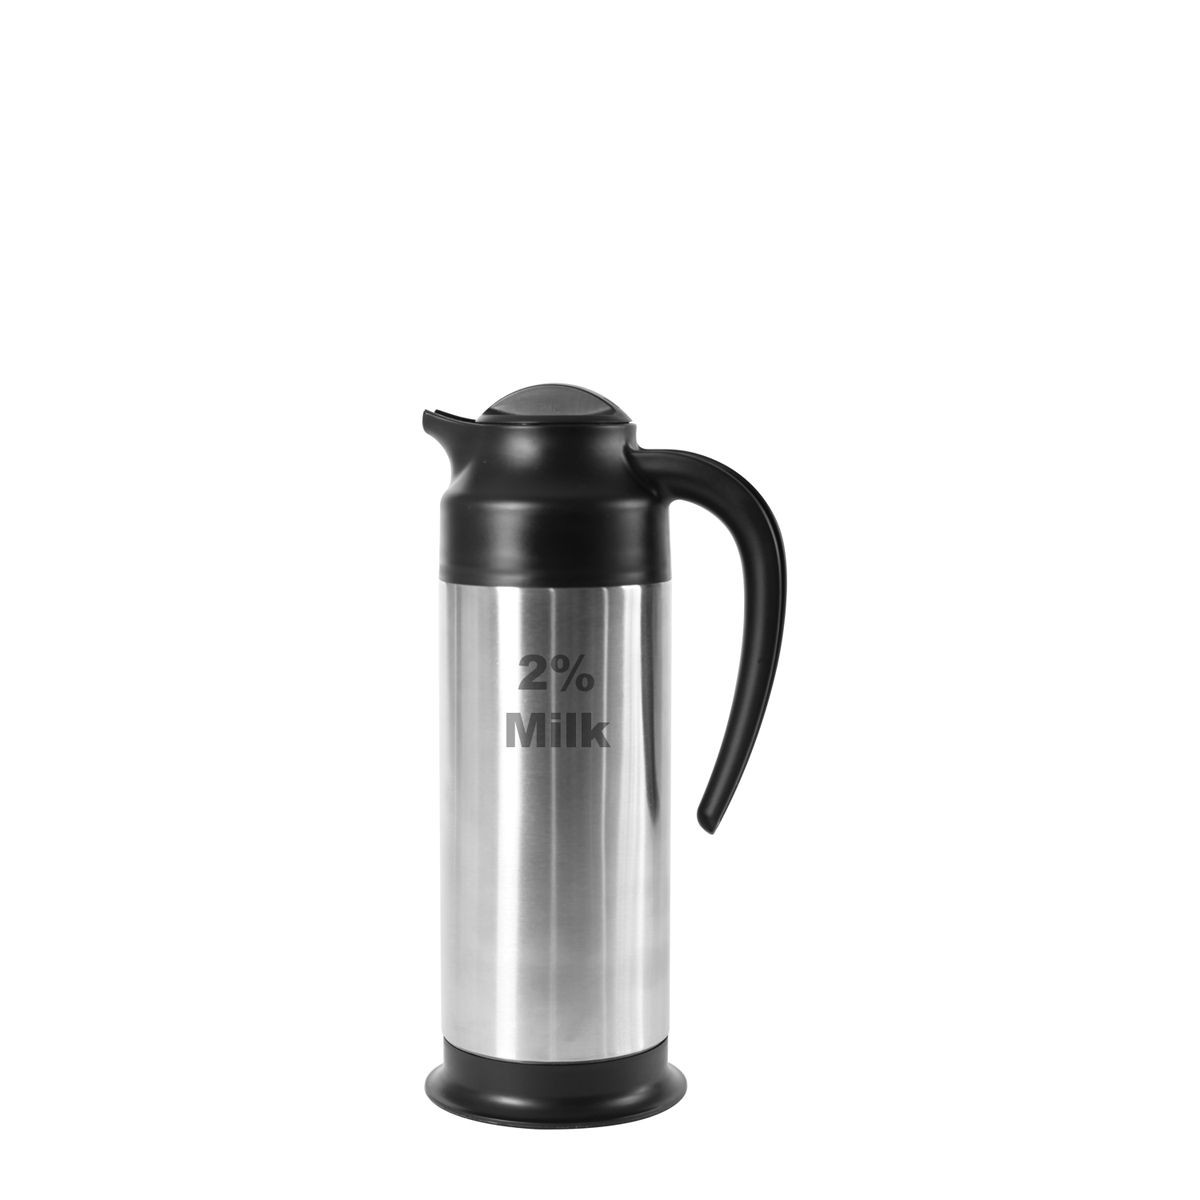 Service Ideas SSN1002% Stainless Vacuum Carafe for 2% with Screw-on Lid, 1 Liter